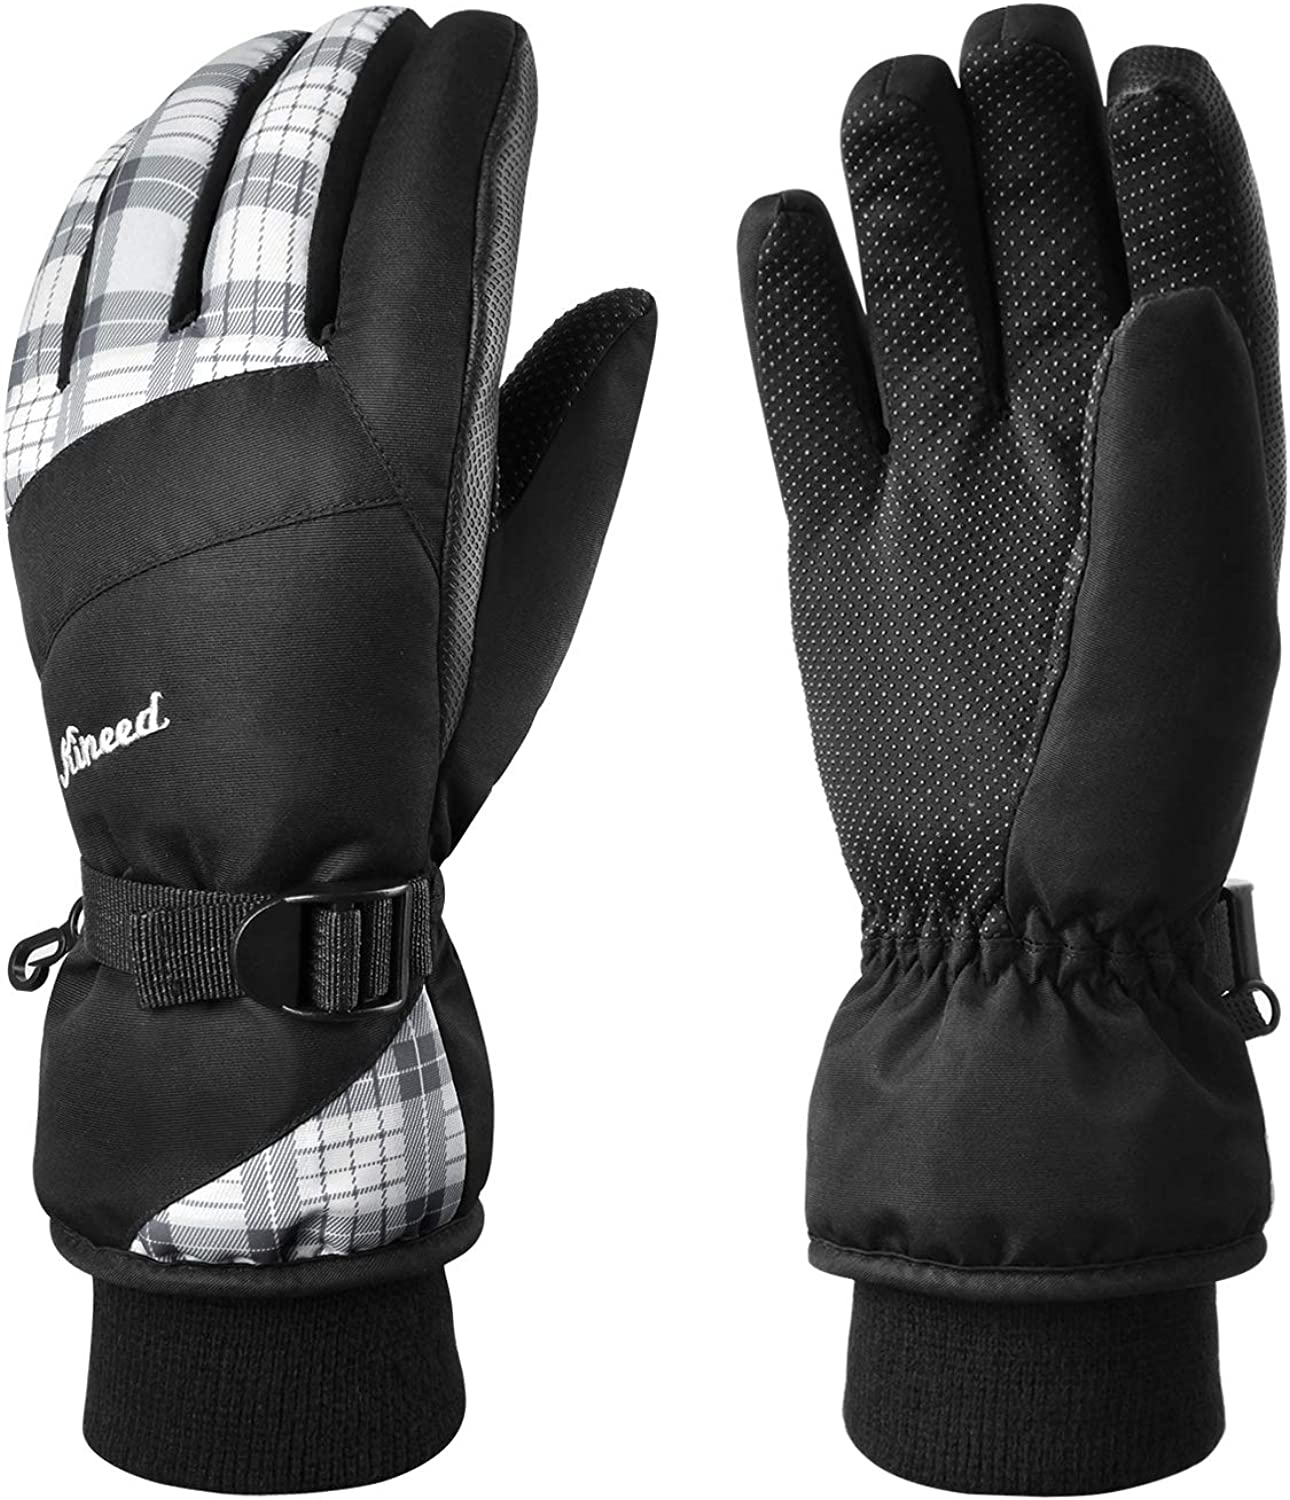 KINEED Waterproof Ski Gloves Touchscreen 3M Thinsulate Winter Warm Snow Gloves for Women Youth : Sports & Outdoors